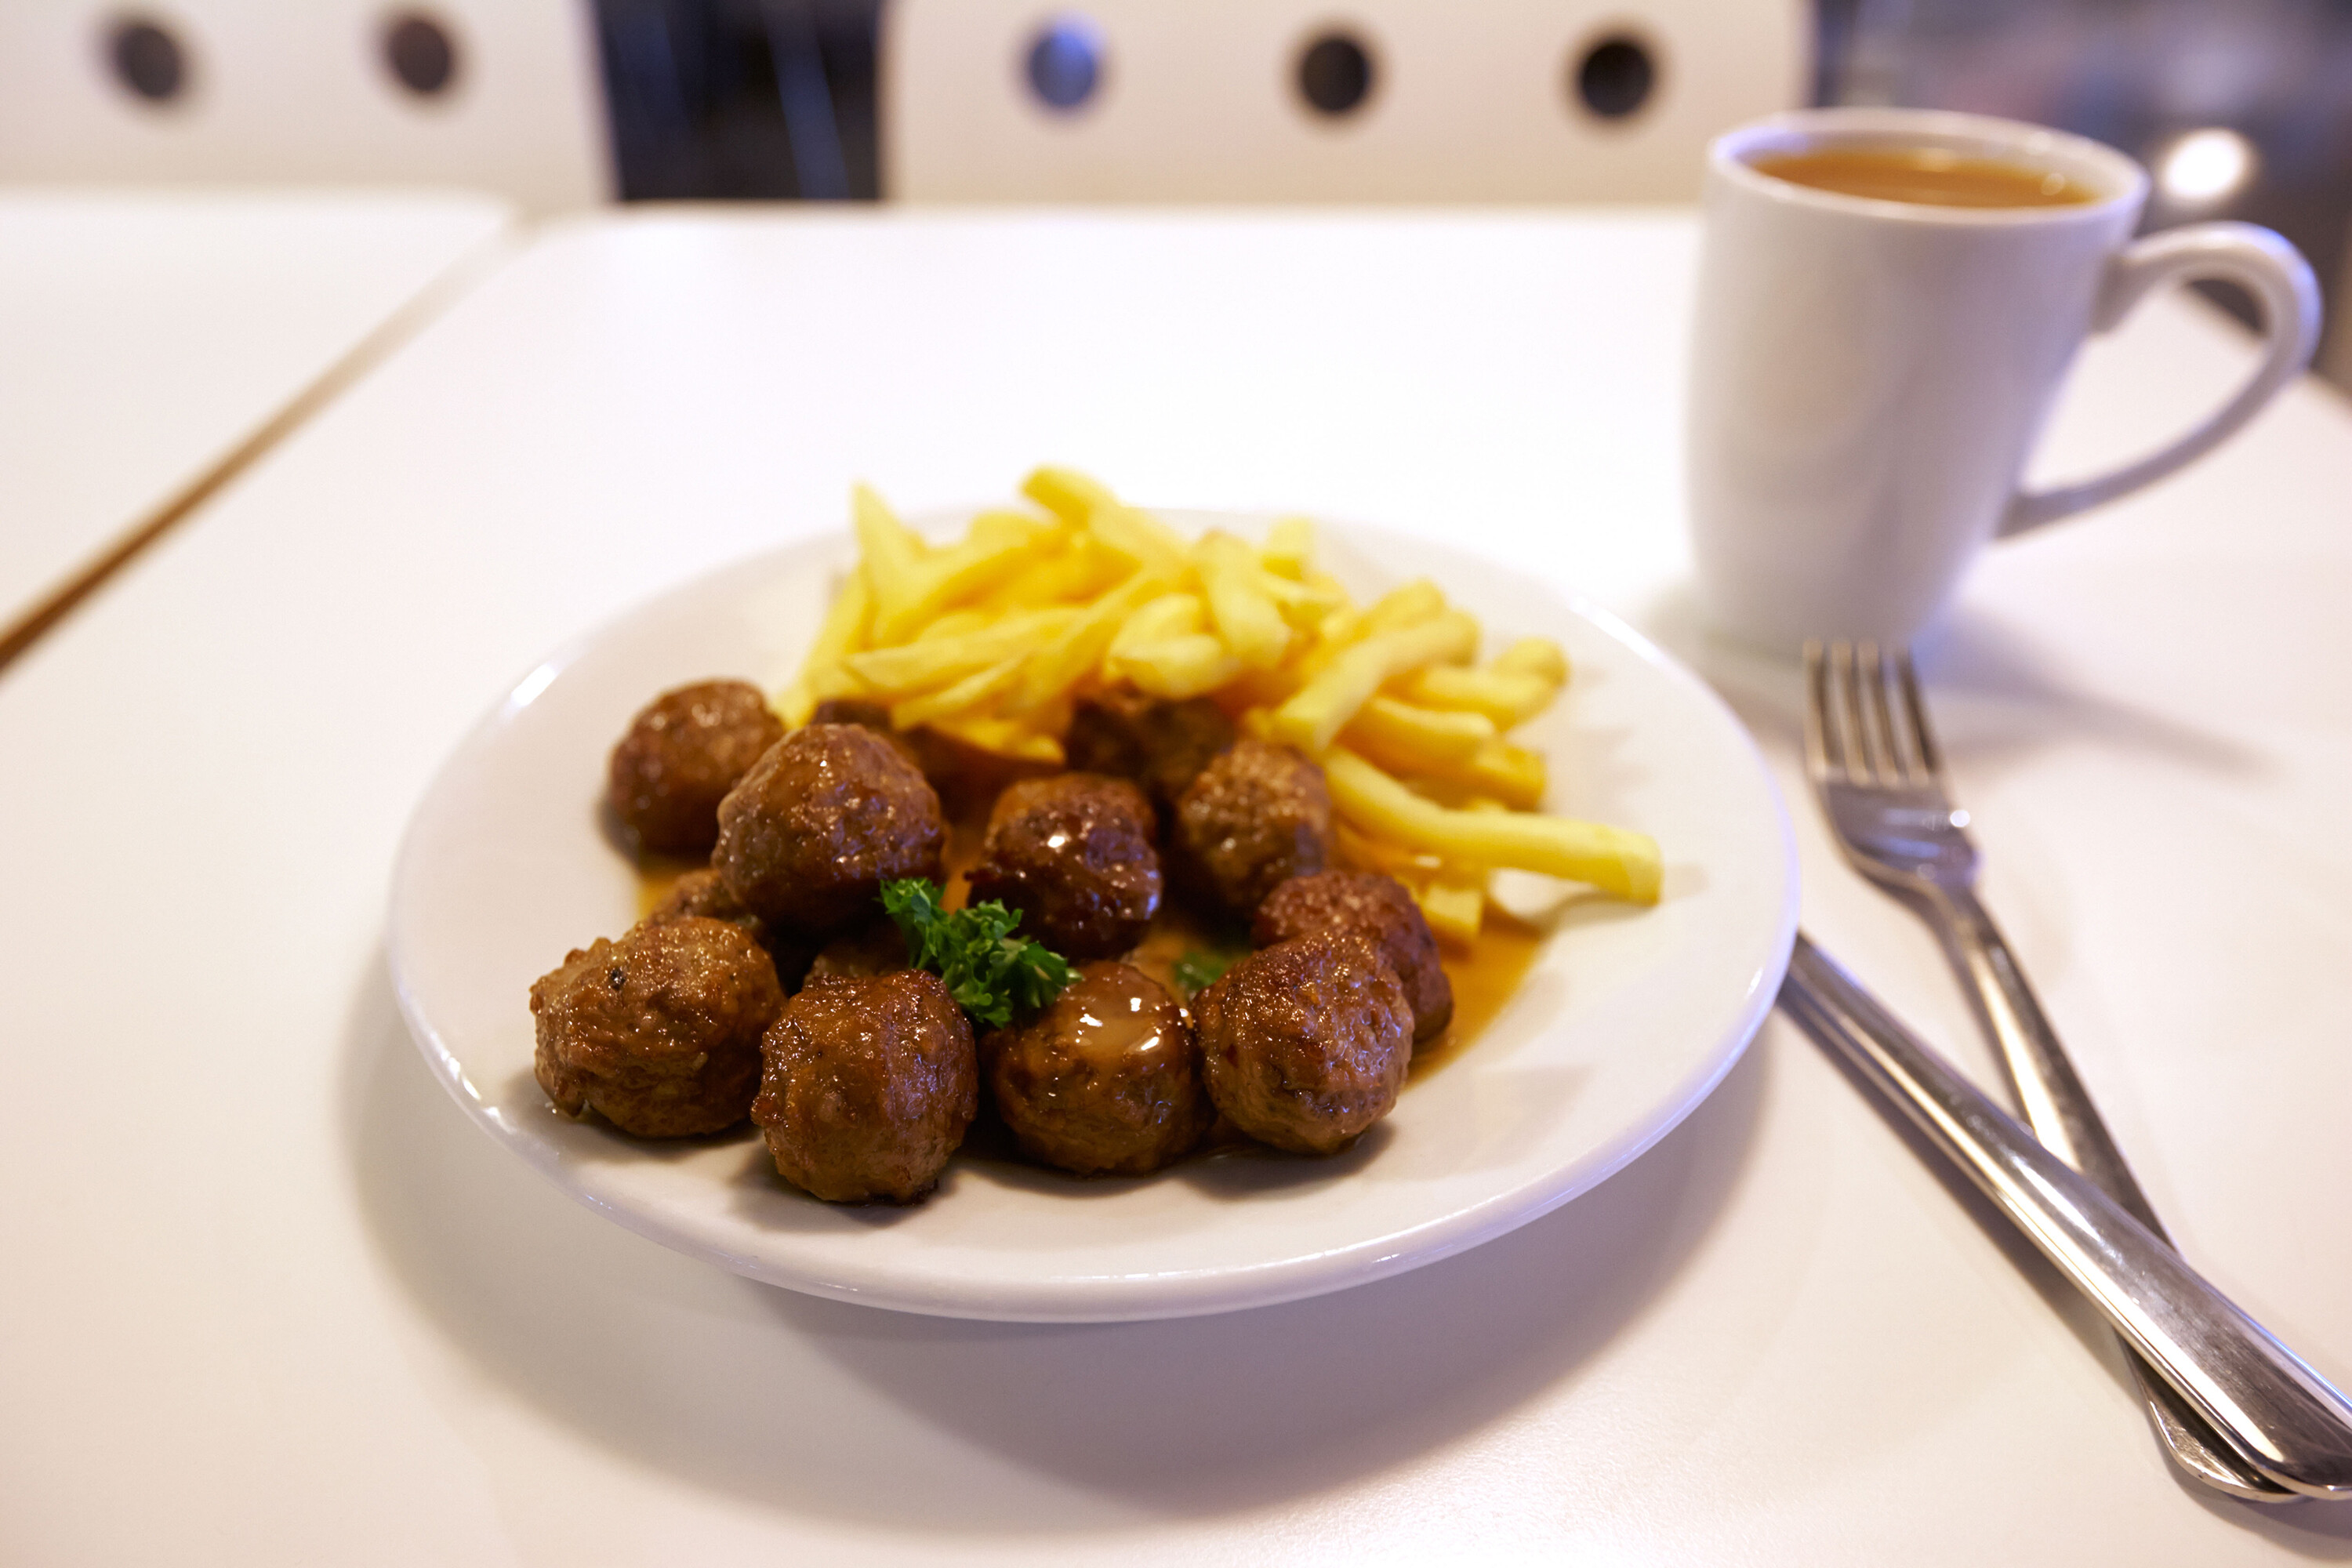 Ikea loyal customers can now win a candle that smells like its famous meatballs